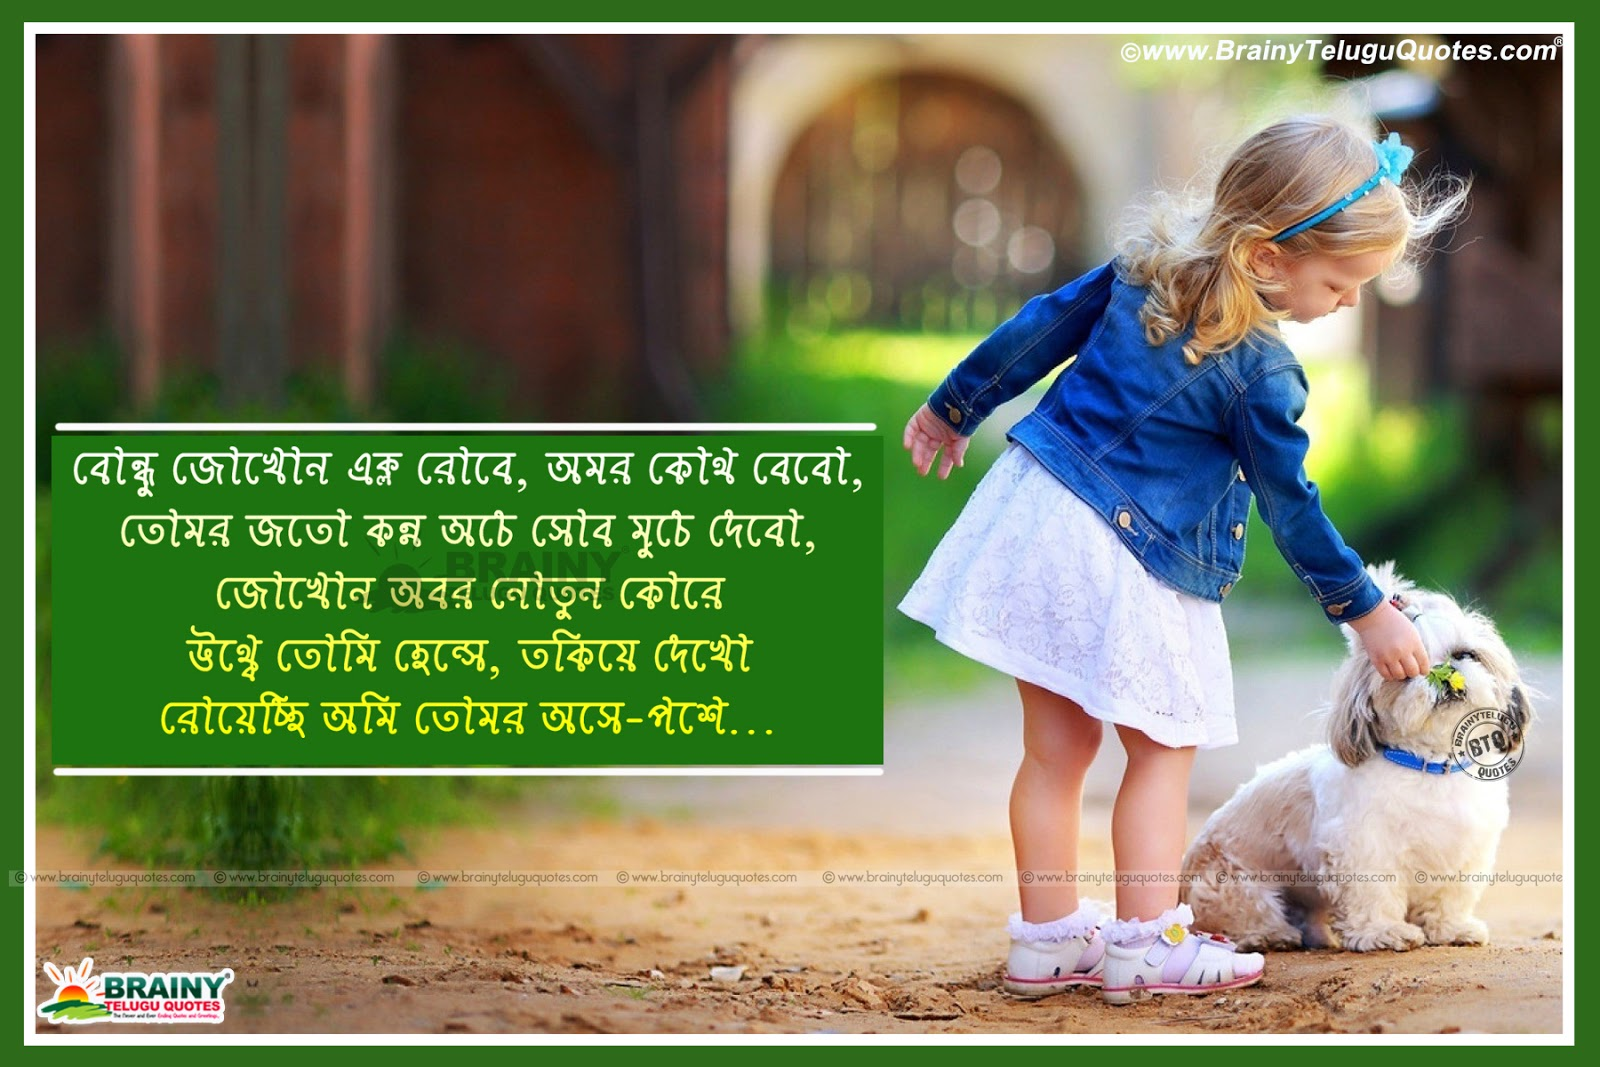 Best Friendship Value Quotes With Hd Wallpapers In Bengali